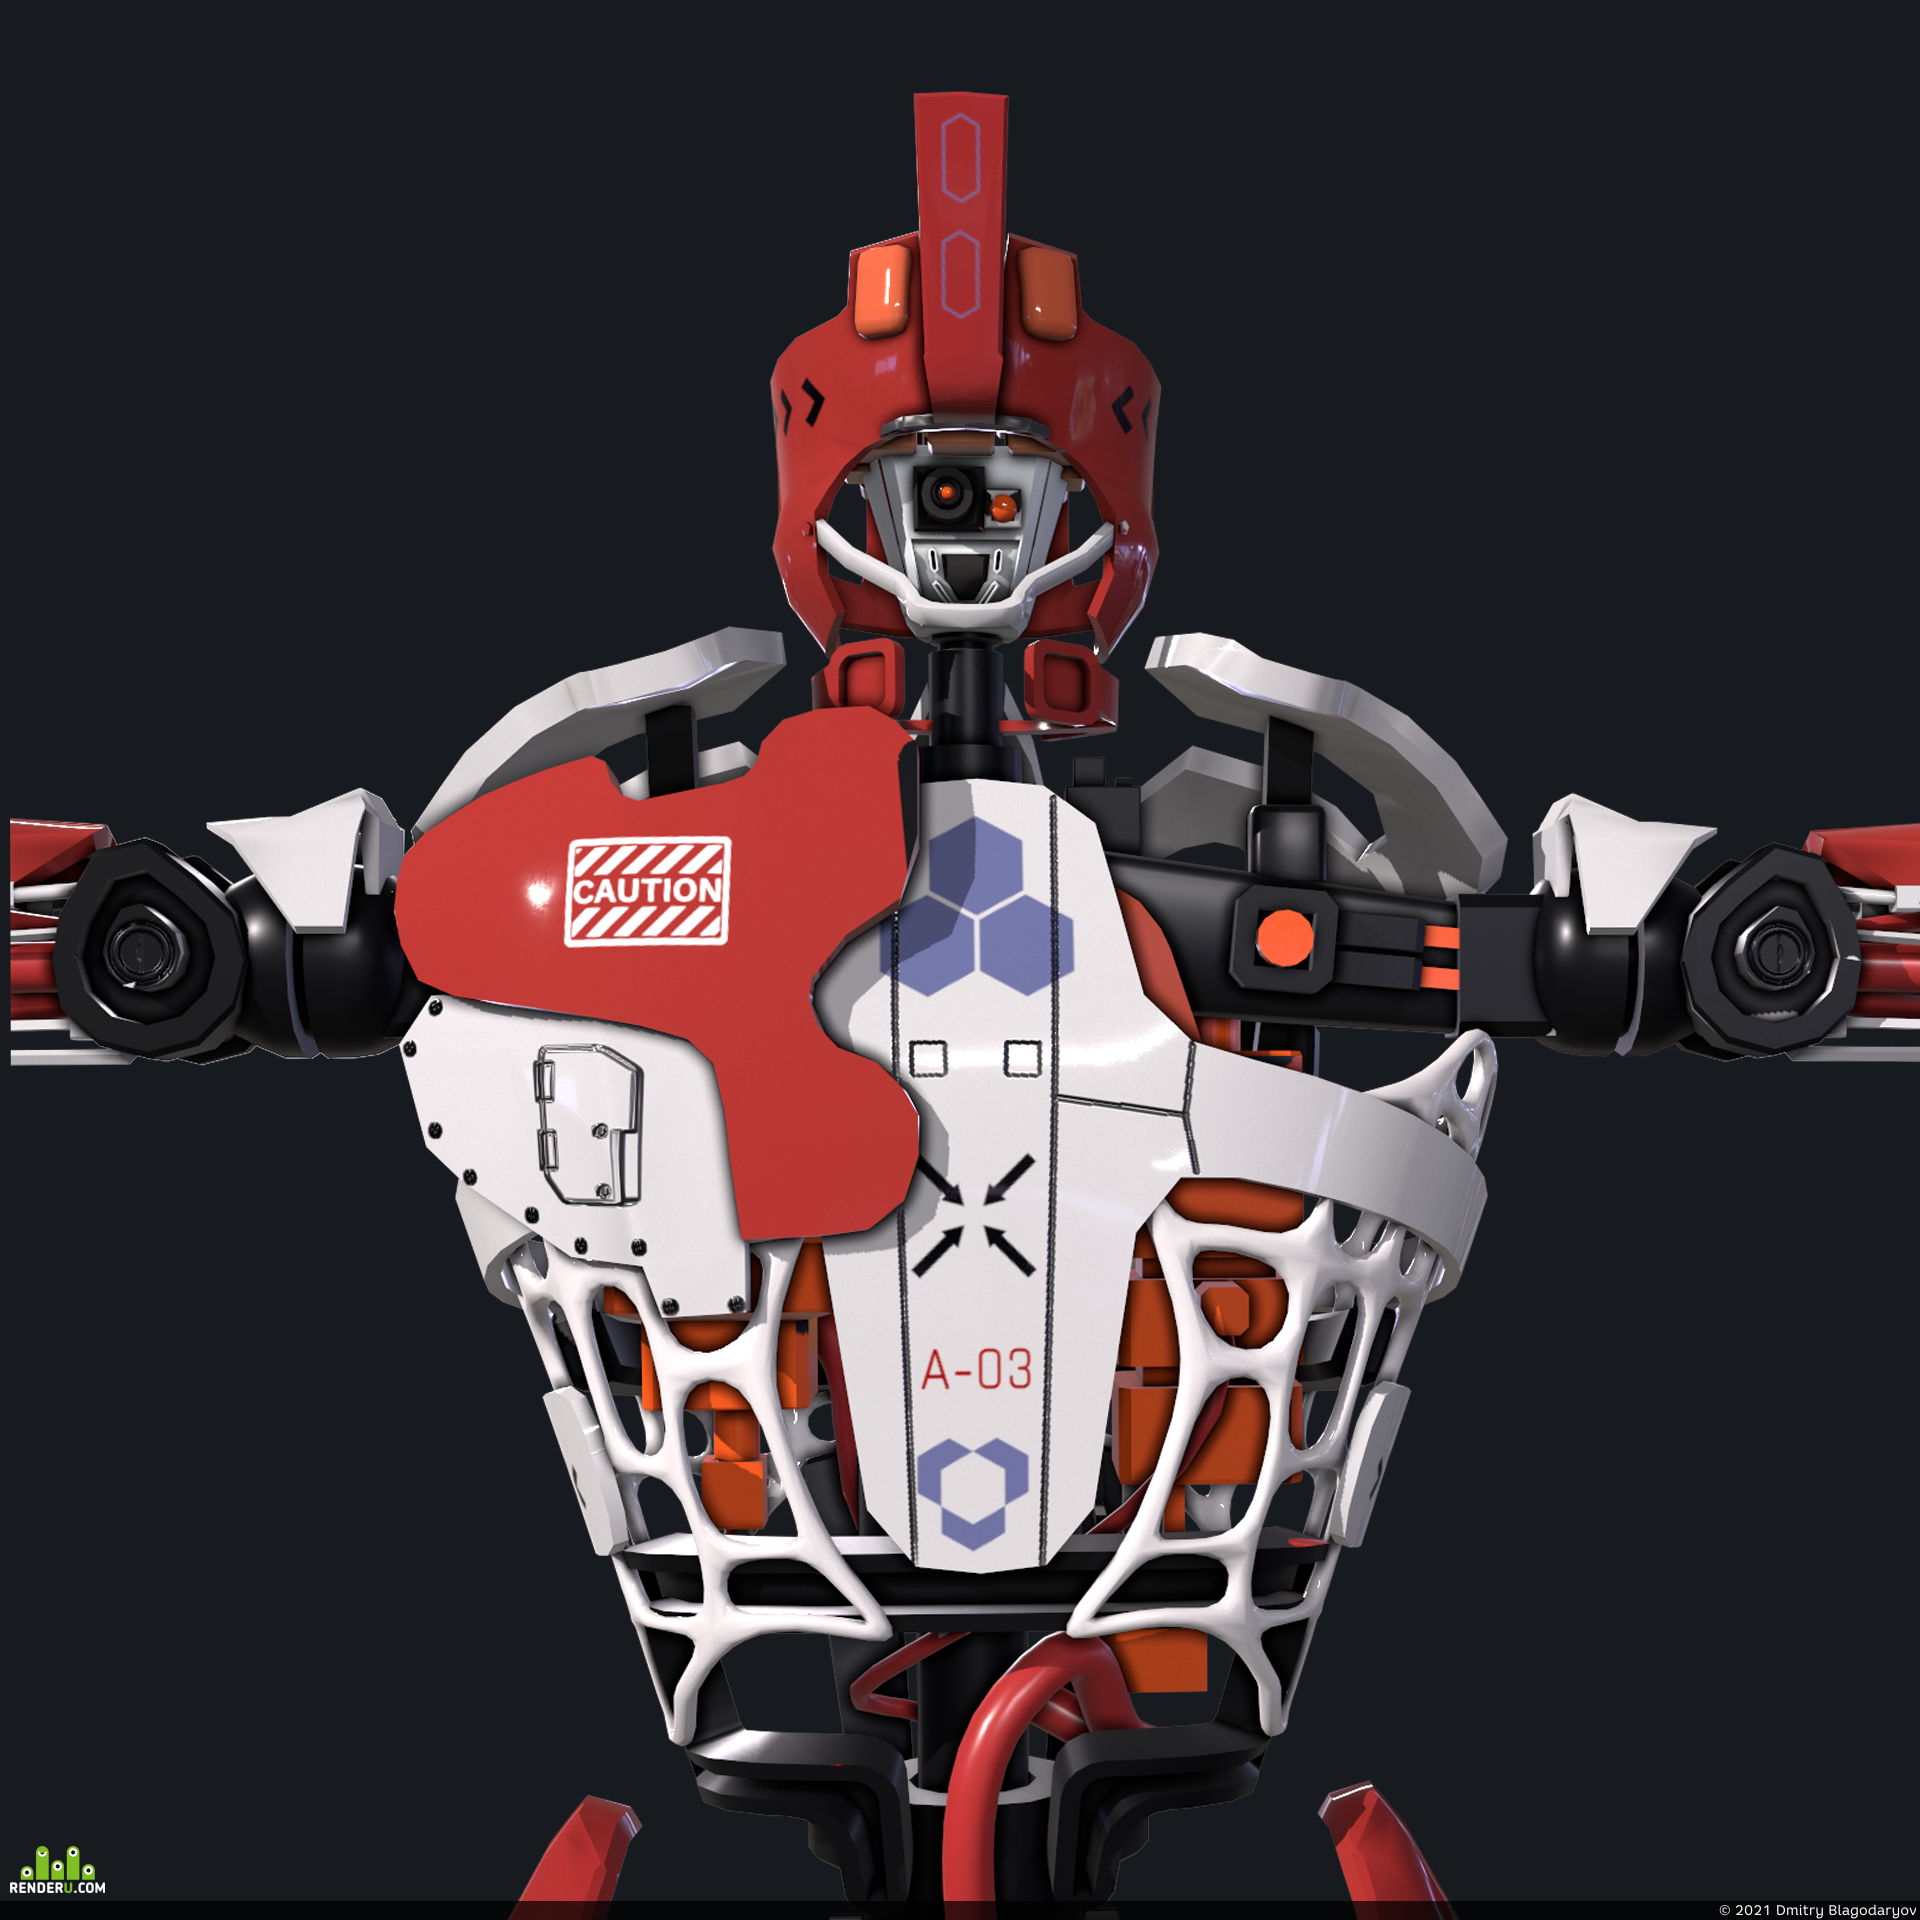 preview Robot humanoid A-003